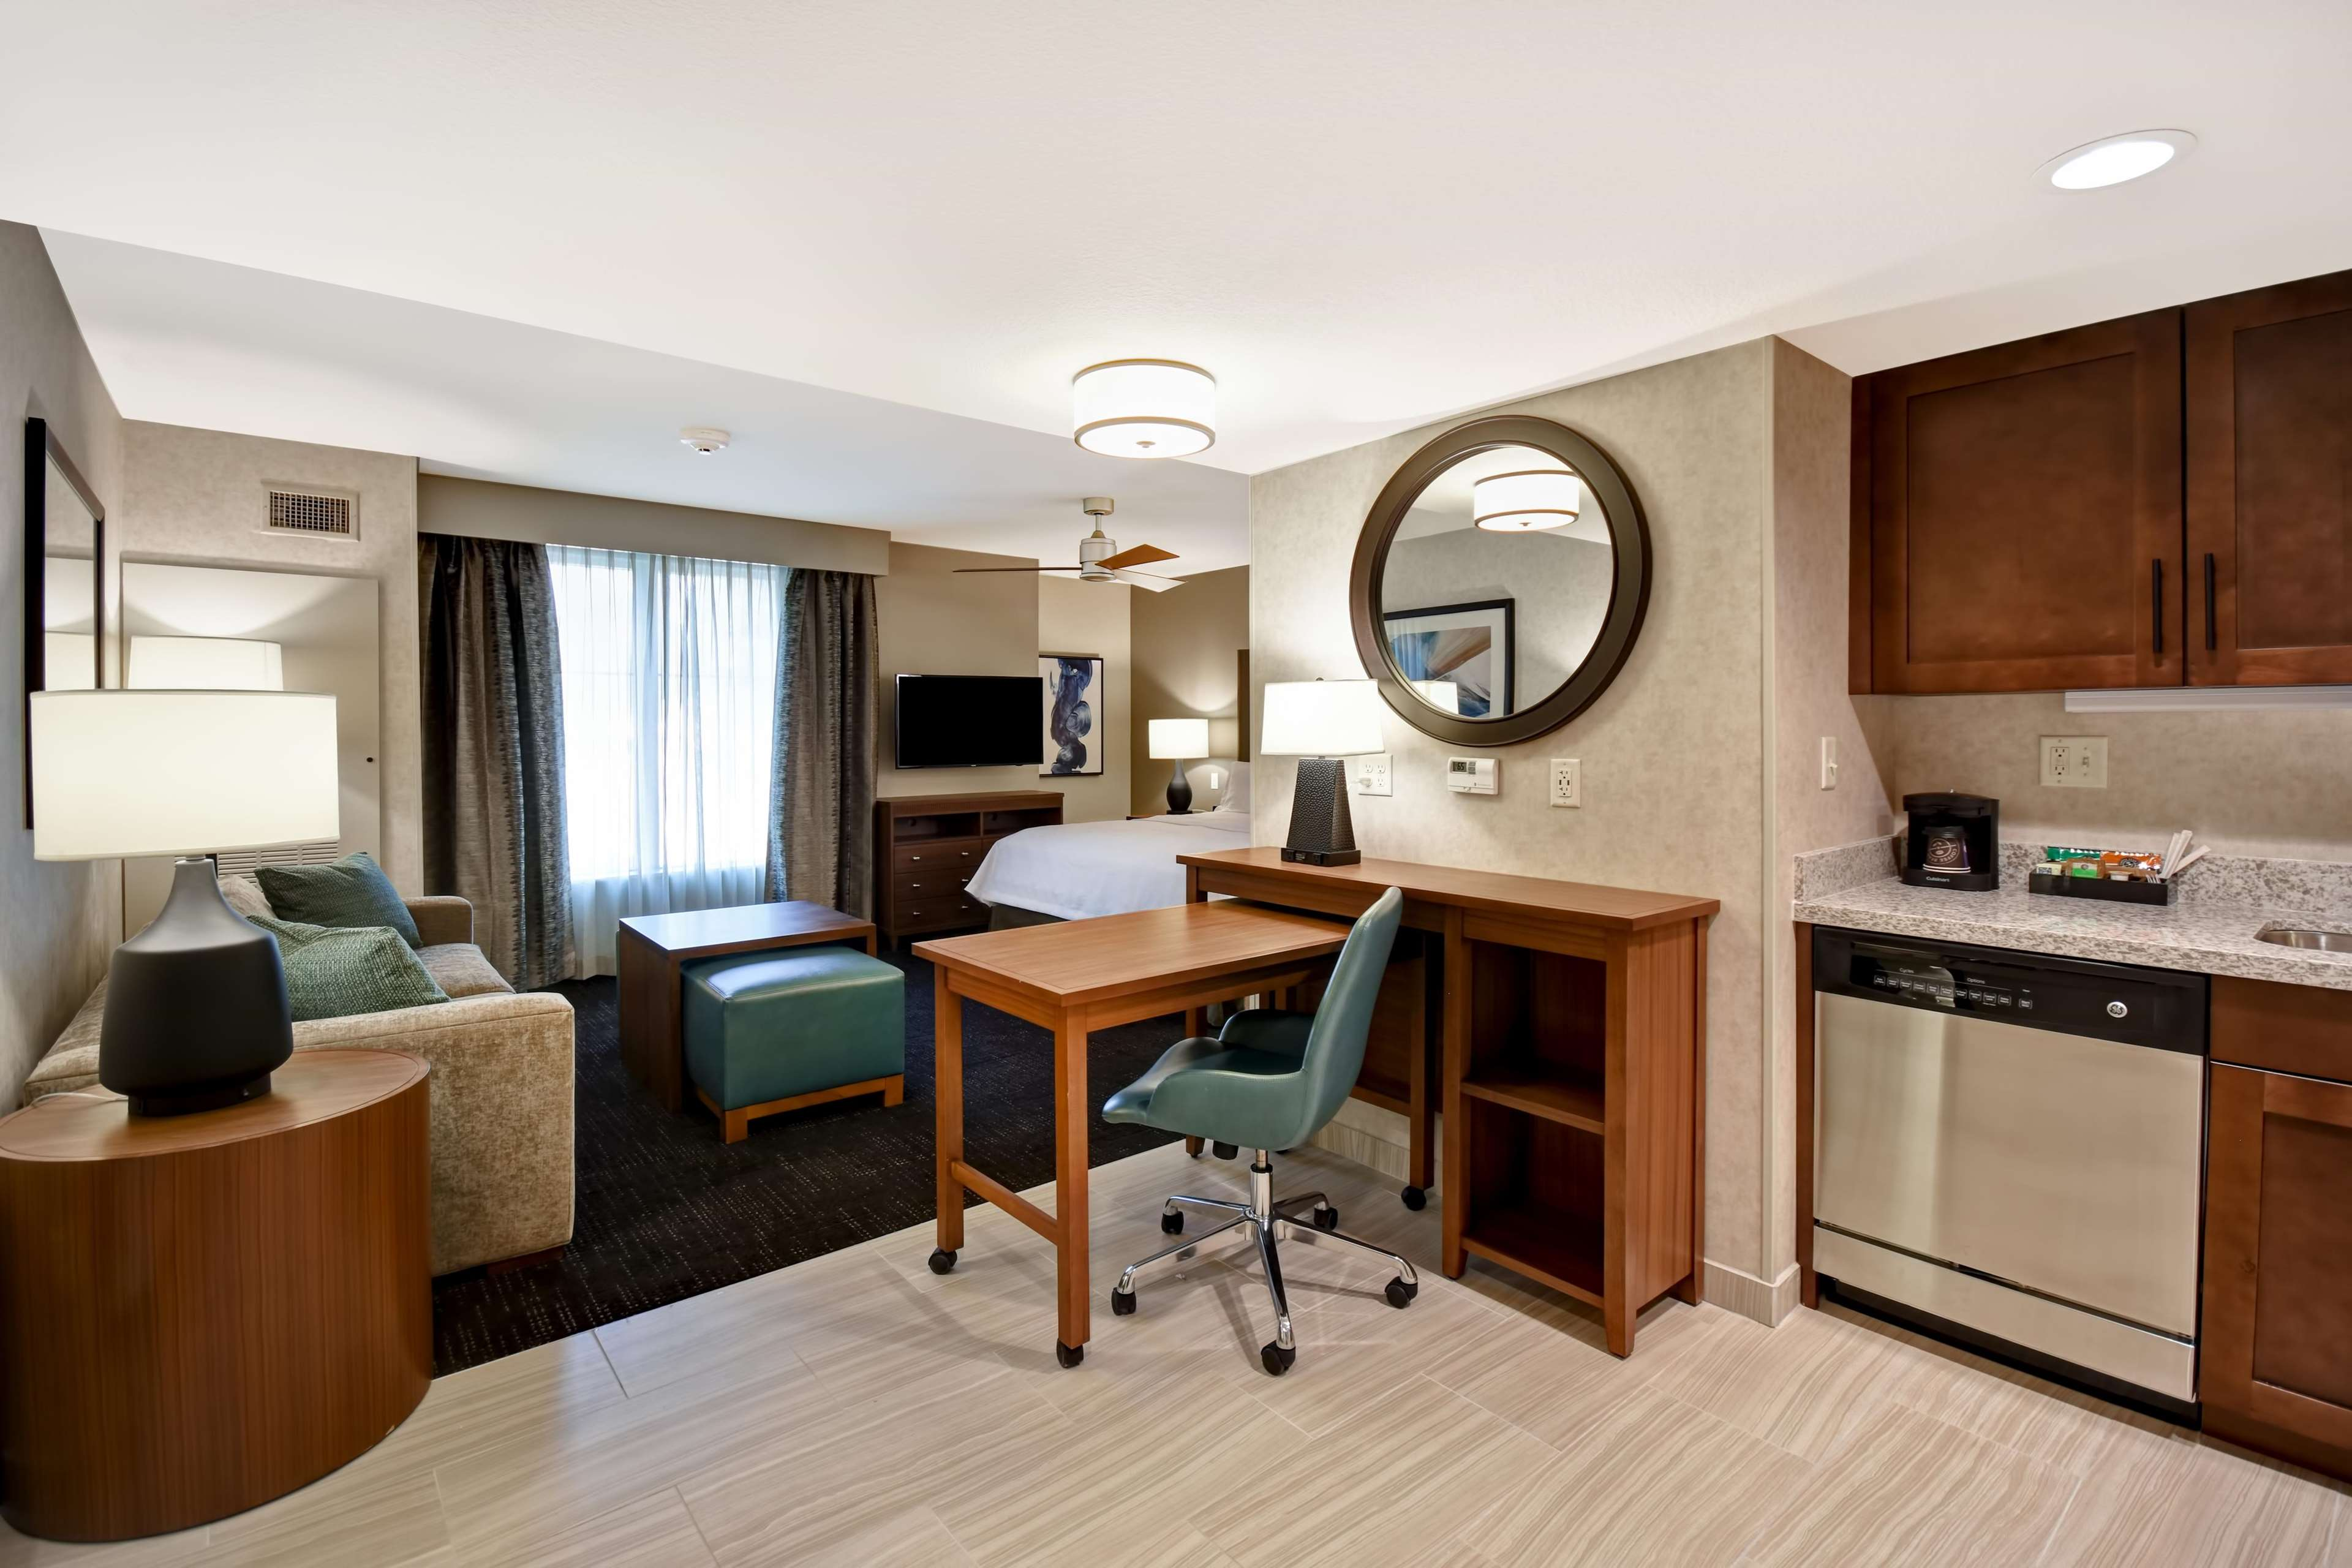 Homewood Suites by Hilton Pleasant Hill Concord image 12